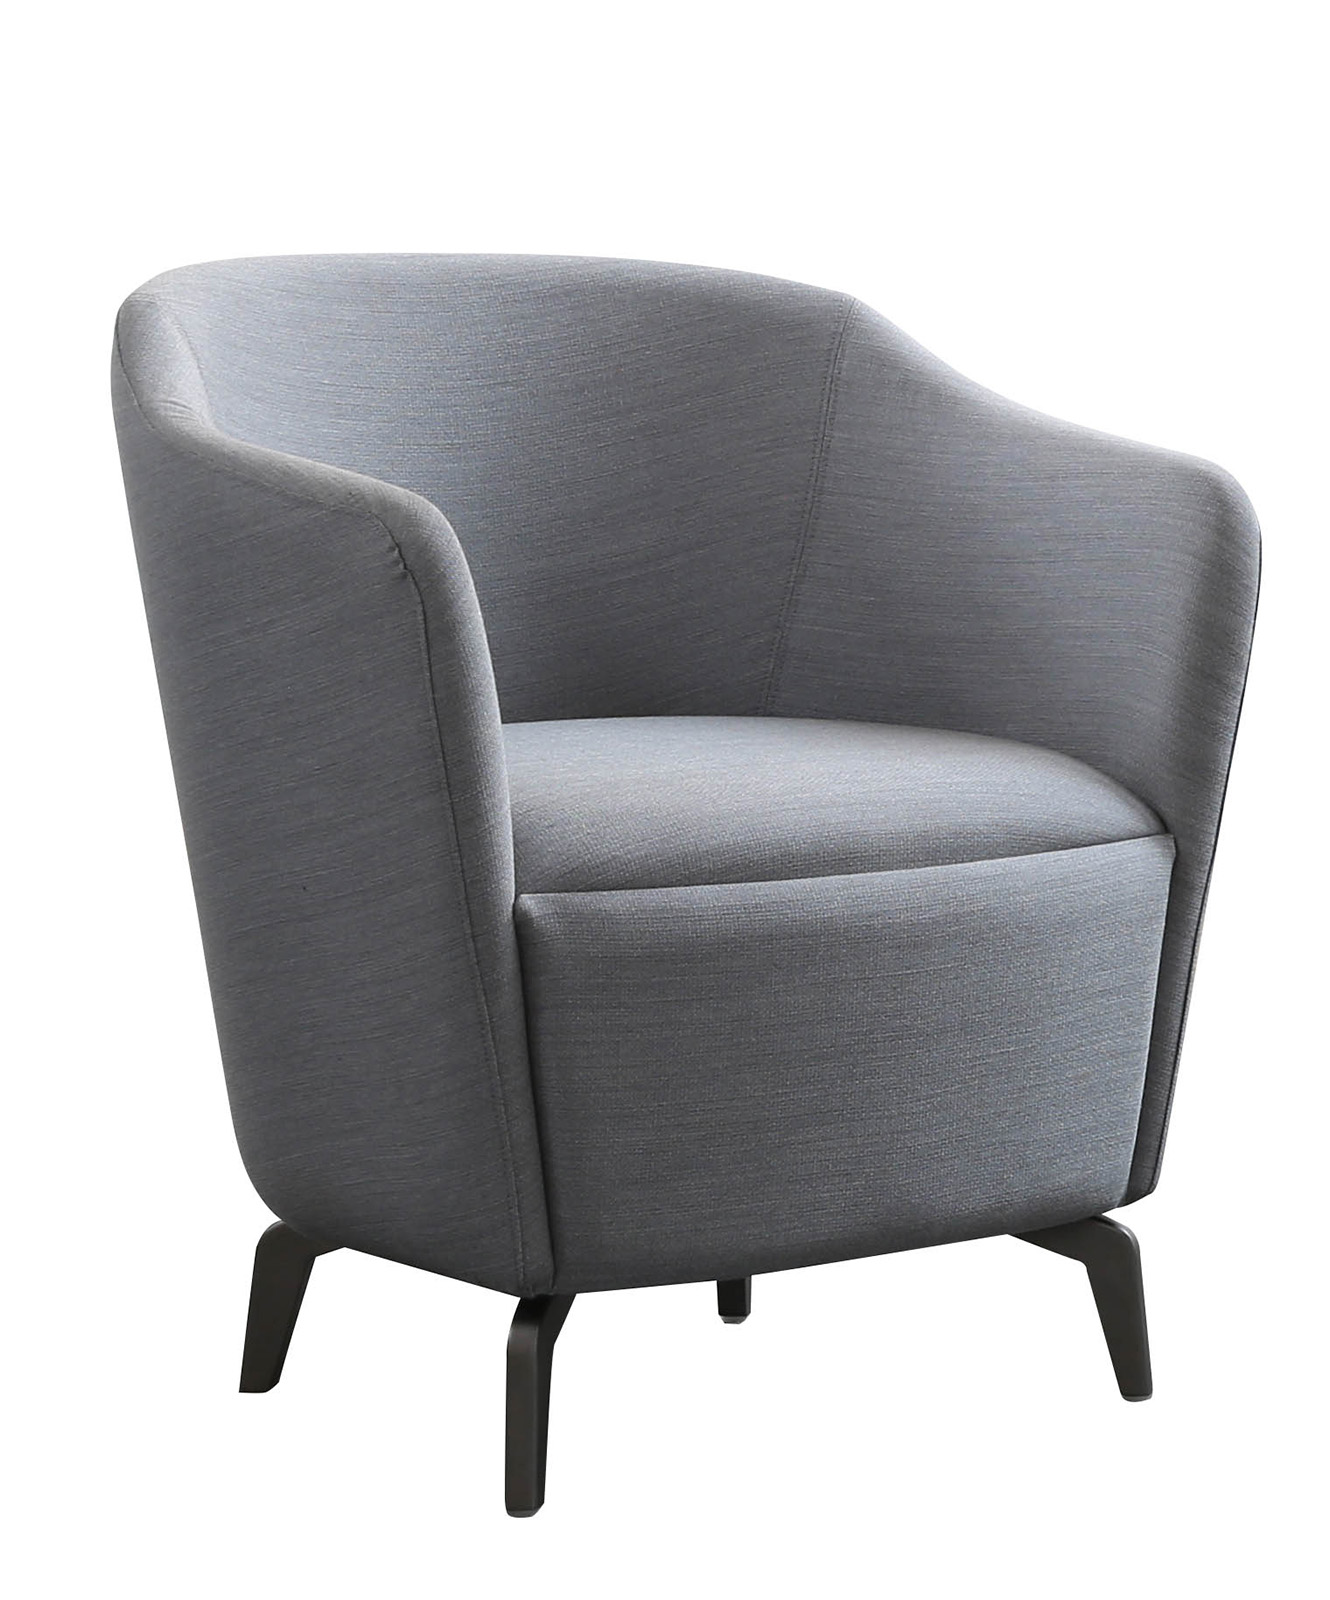 grey tub chair, upholstered tub chair, office seating, reception seating